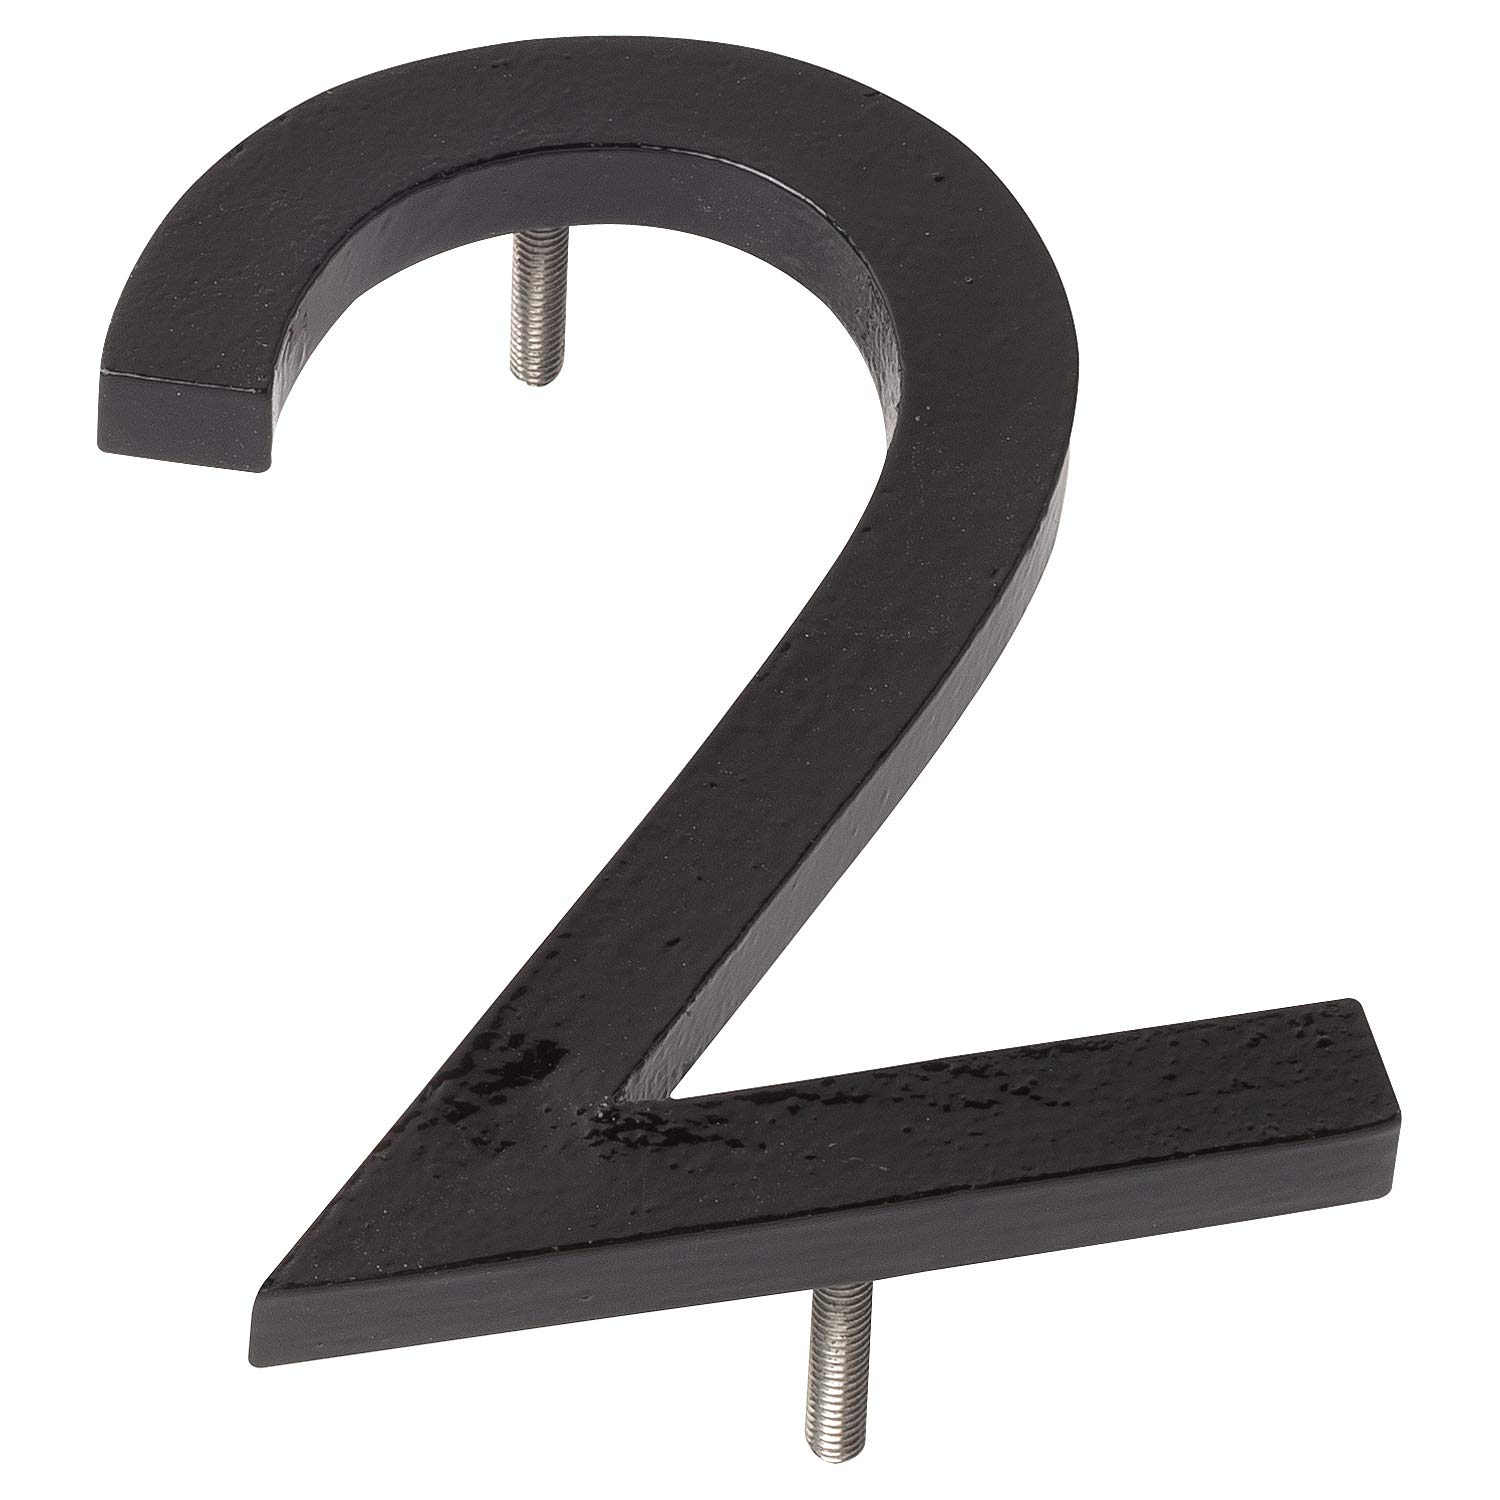 Montague Metal Products MHN-06-2-F-BK1 Floating House Number, 6'' x 4.25'' x 0.31'' Black